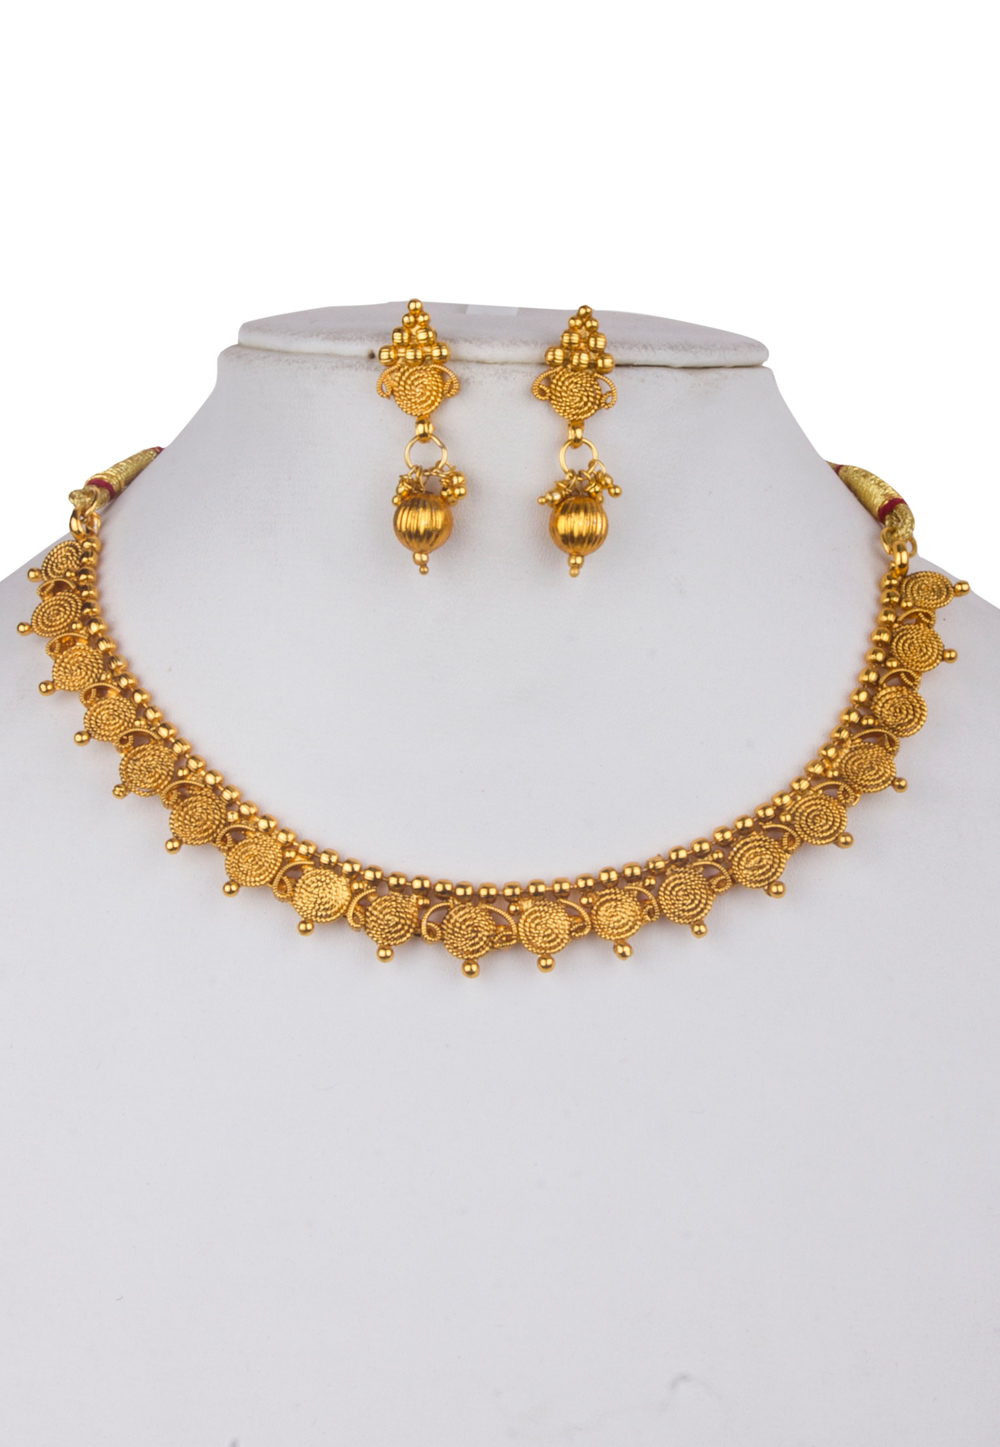 Golden Alloy Kundan Necklace With Earrings 156258